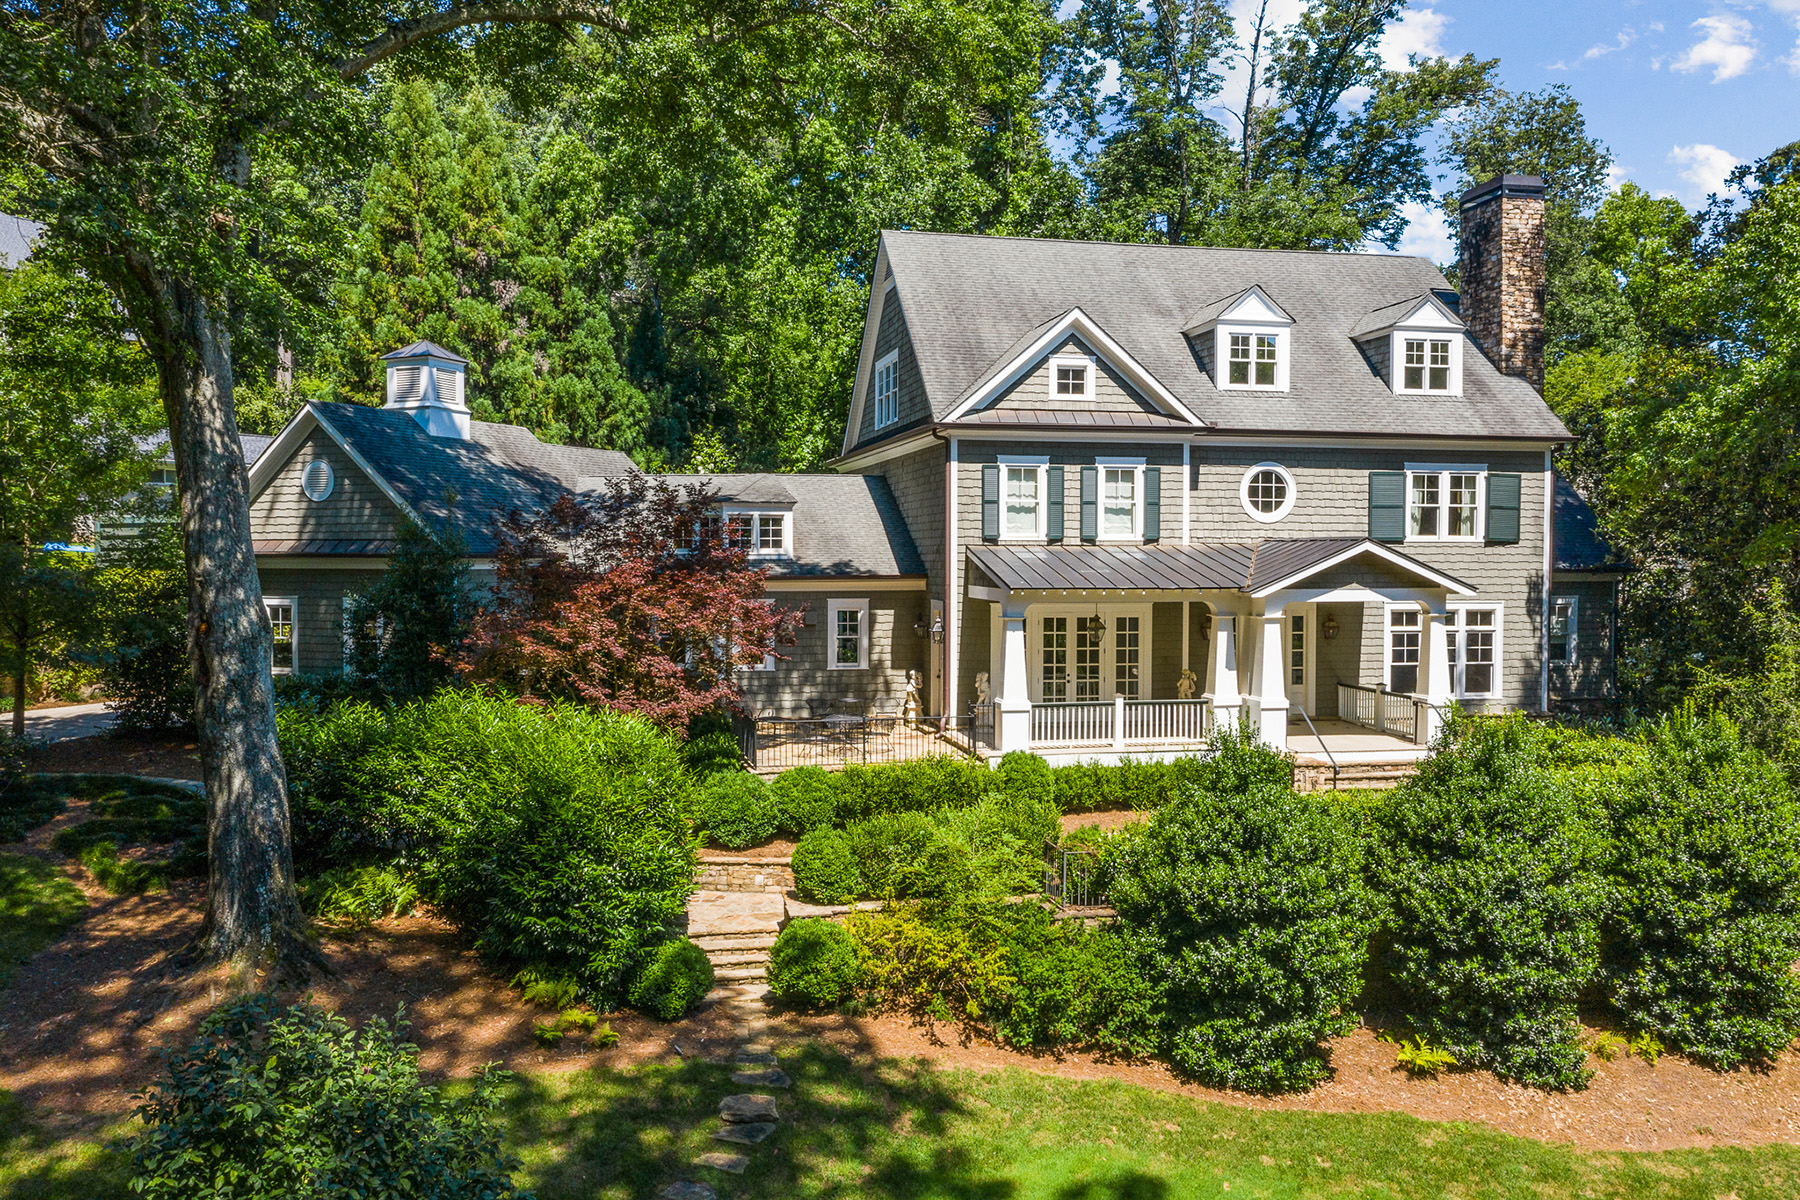 Property for Sale at Classic Shingle Style on Private Buckhead Street 948 Buckingham Circle NW Atlanta, Georgia 30327 United States